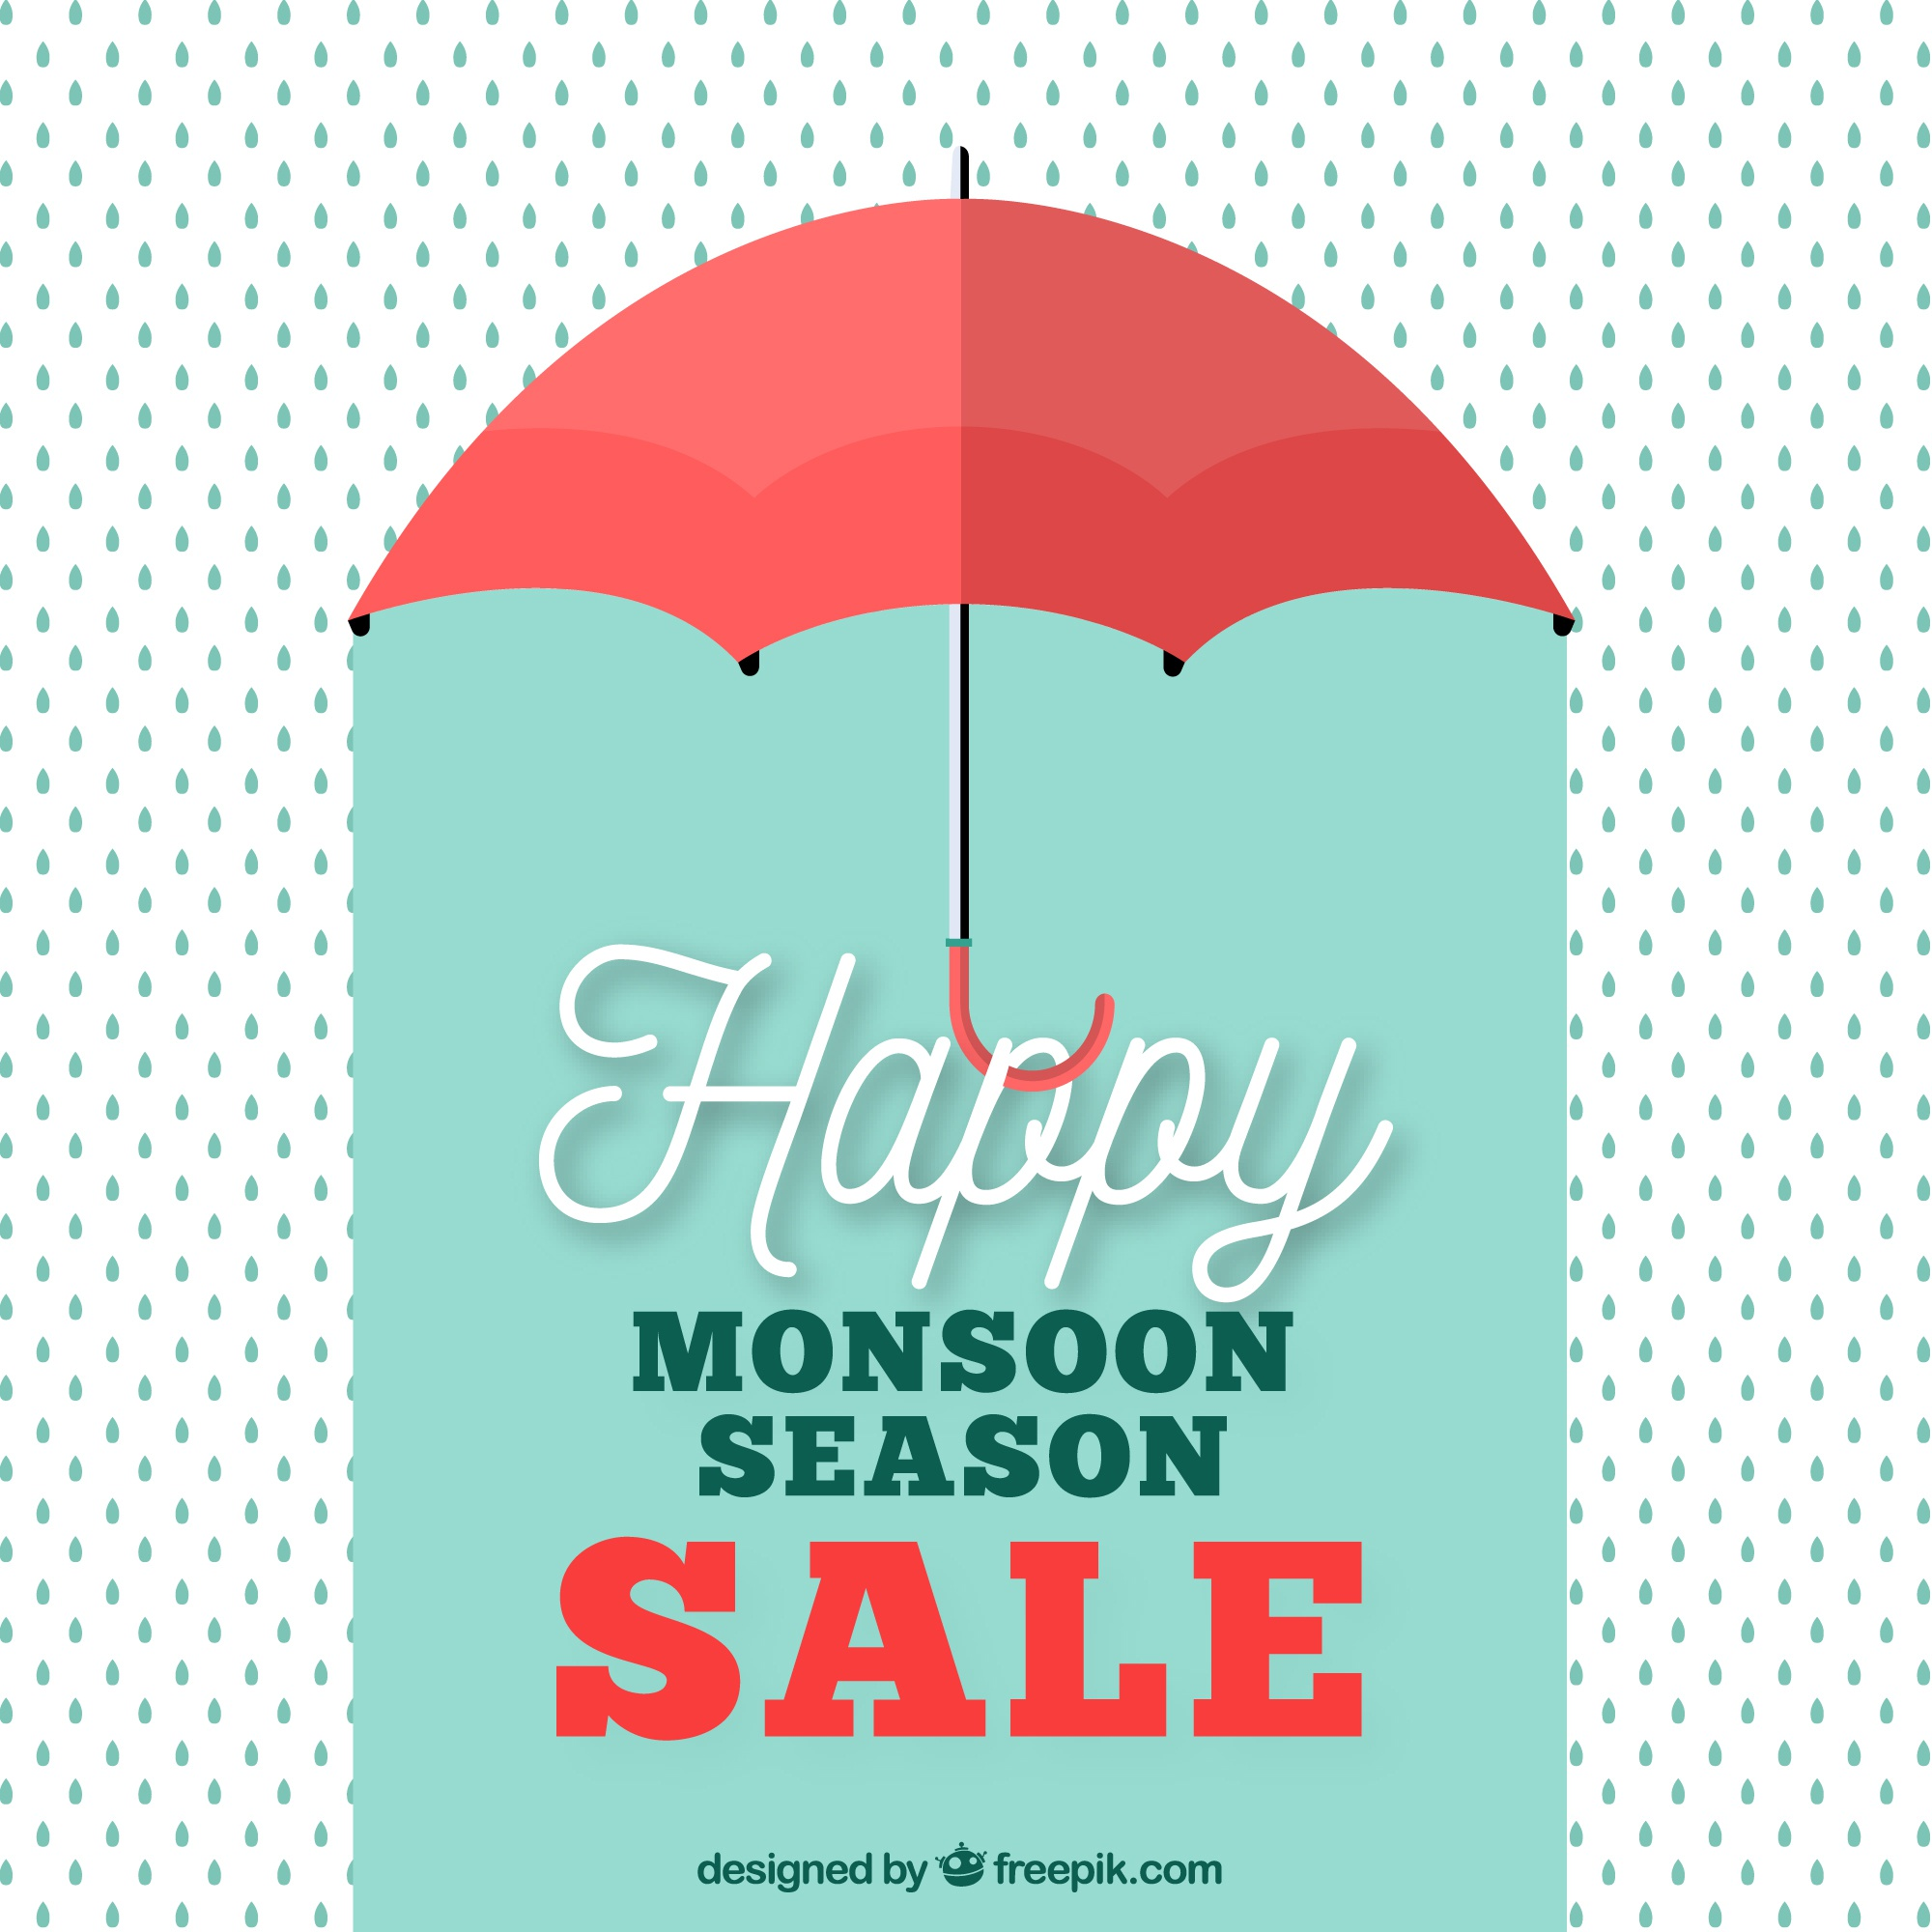 Retro monsoon sale background with umbrella and drops